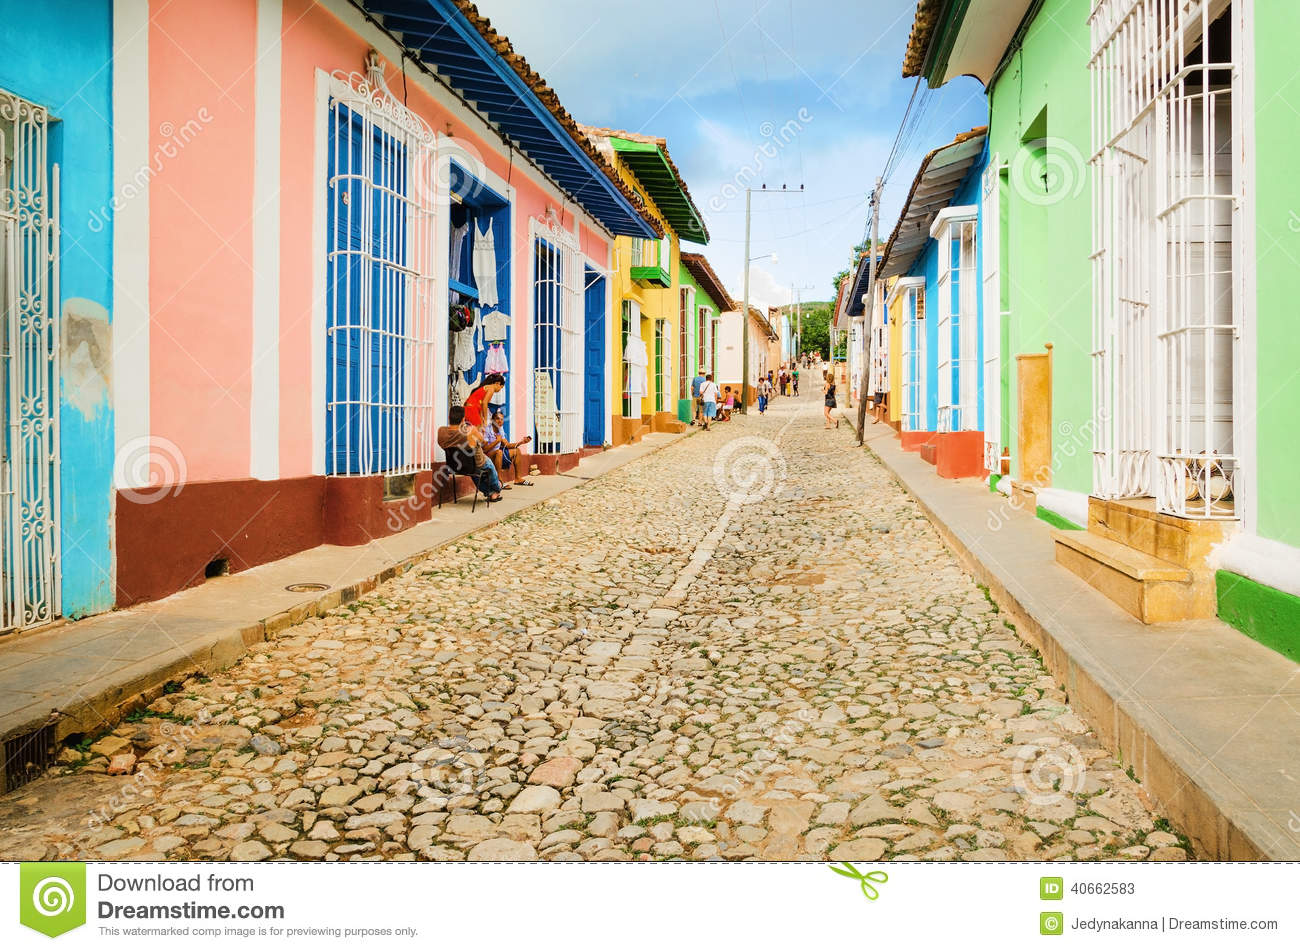 Trinidad Cuba Colorful Traditional Houses In The Colonial Town Of Trinidad Cuba